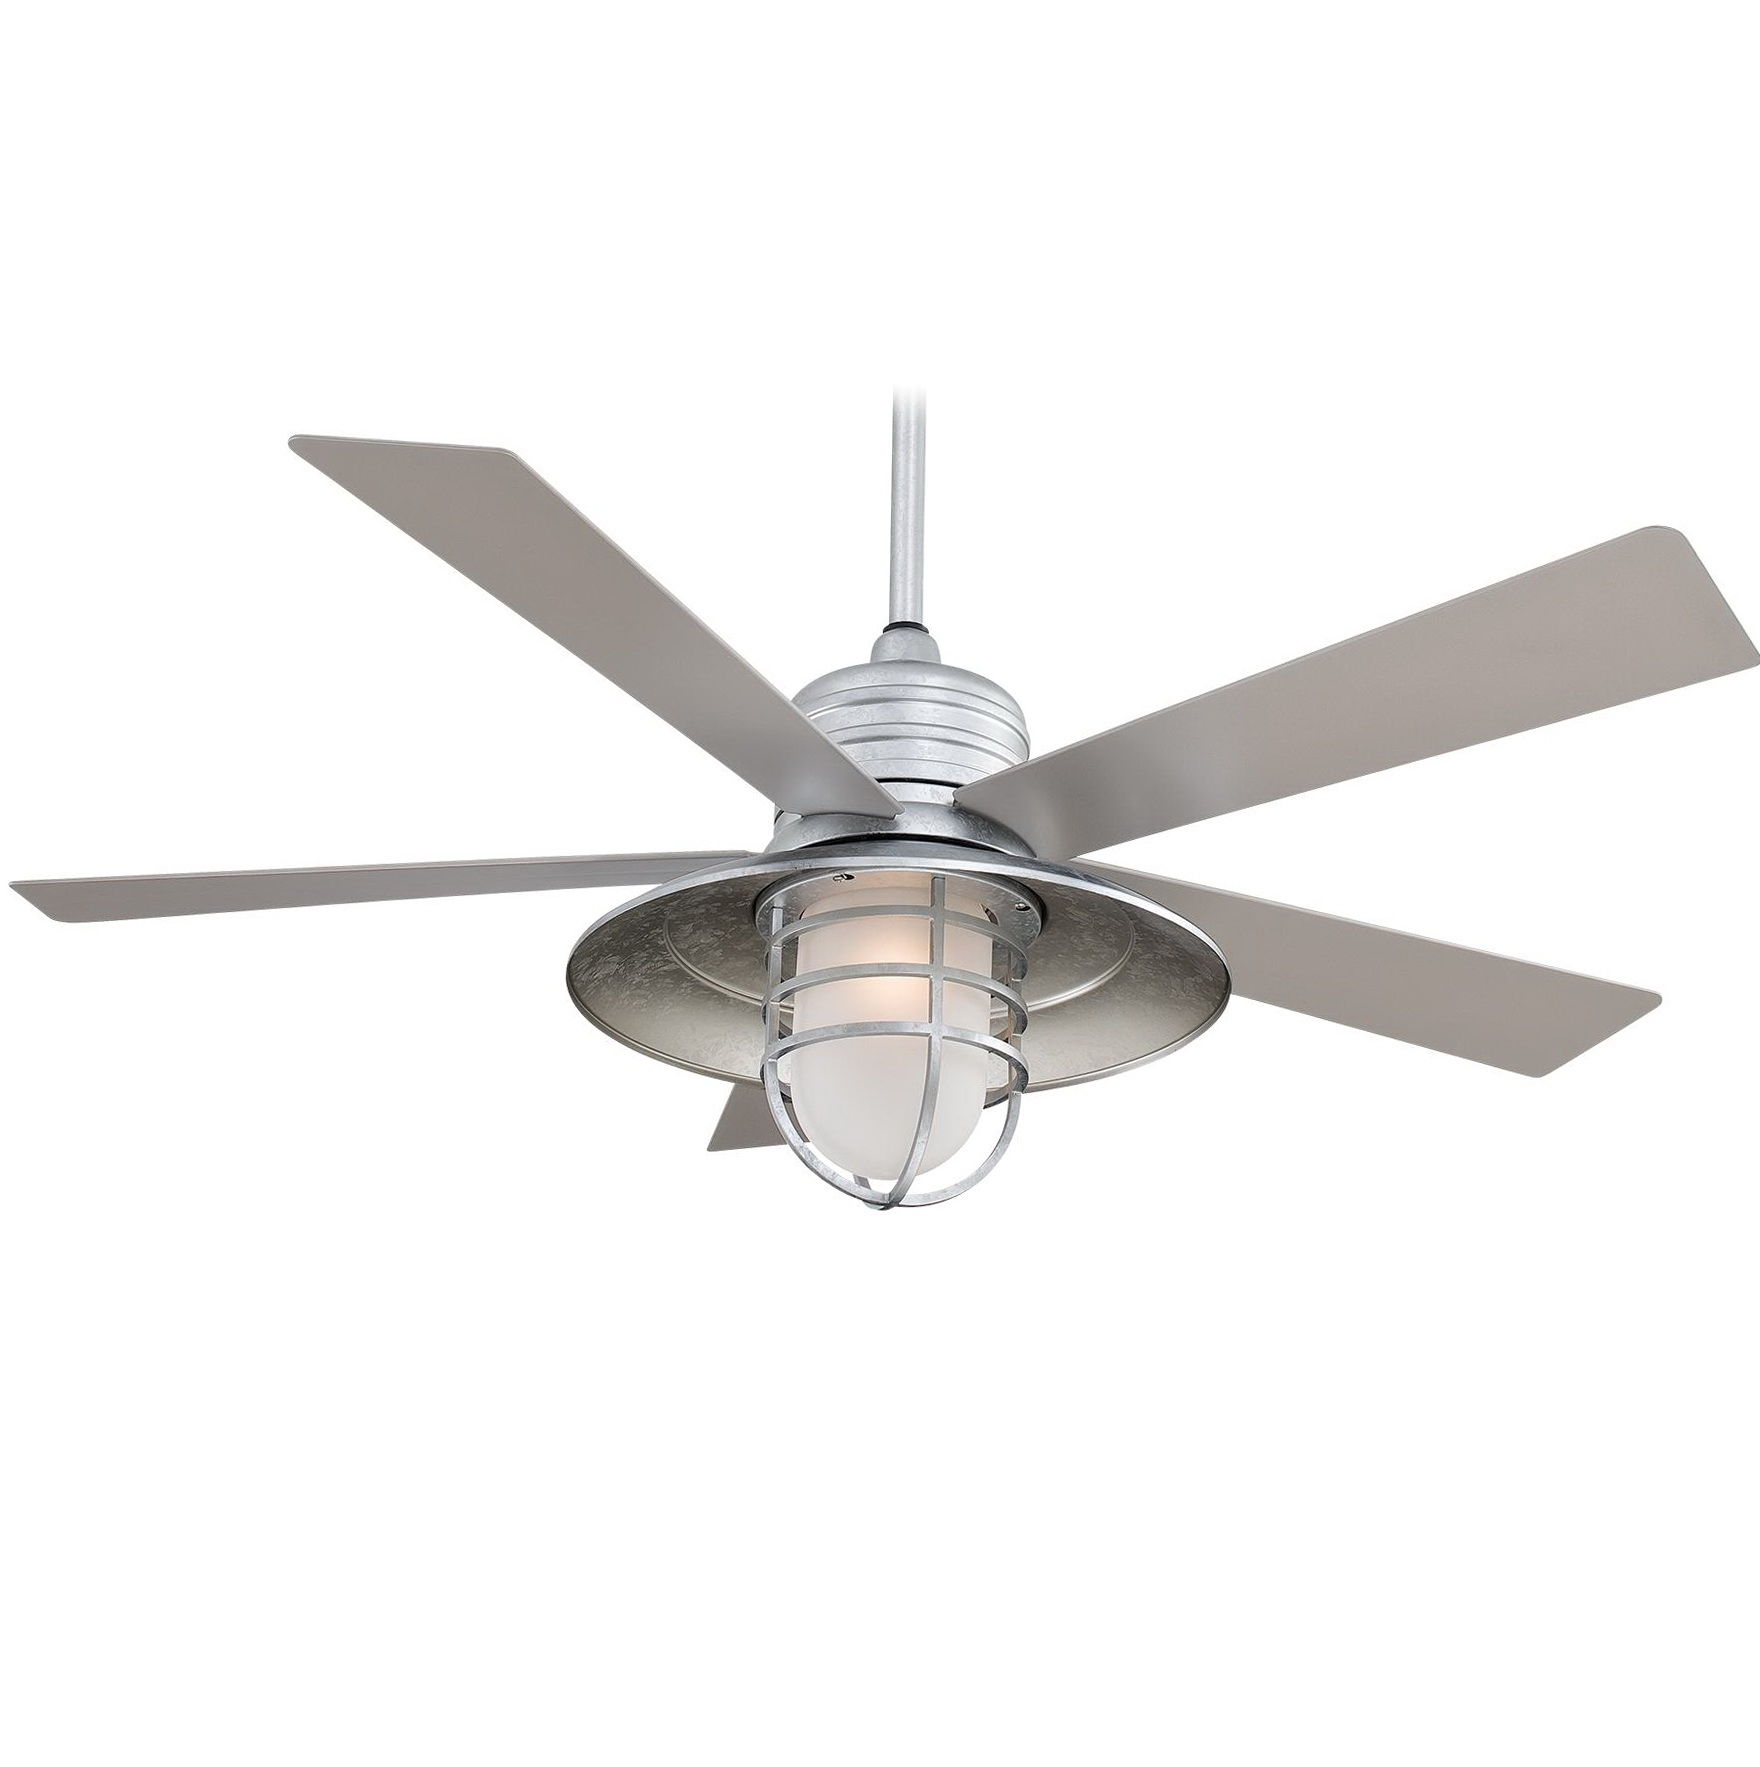 Most Popular Modern Outdoor Ceiling Fans – Pixball Throughout Modern Outdoor Ceiling Fans With Lights (Gallery 5 of 20)